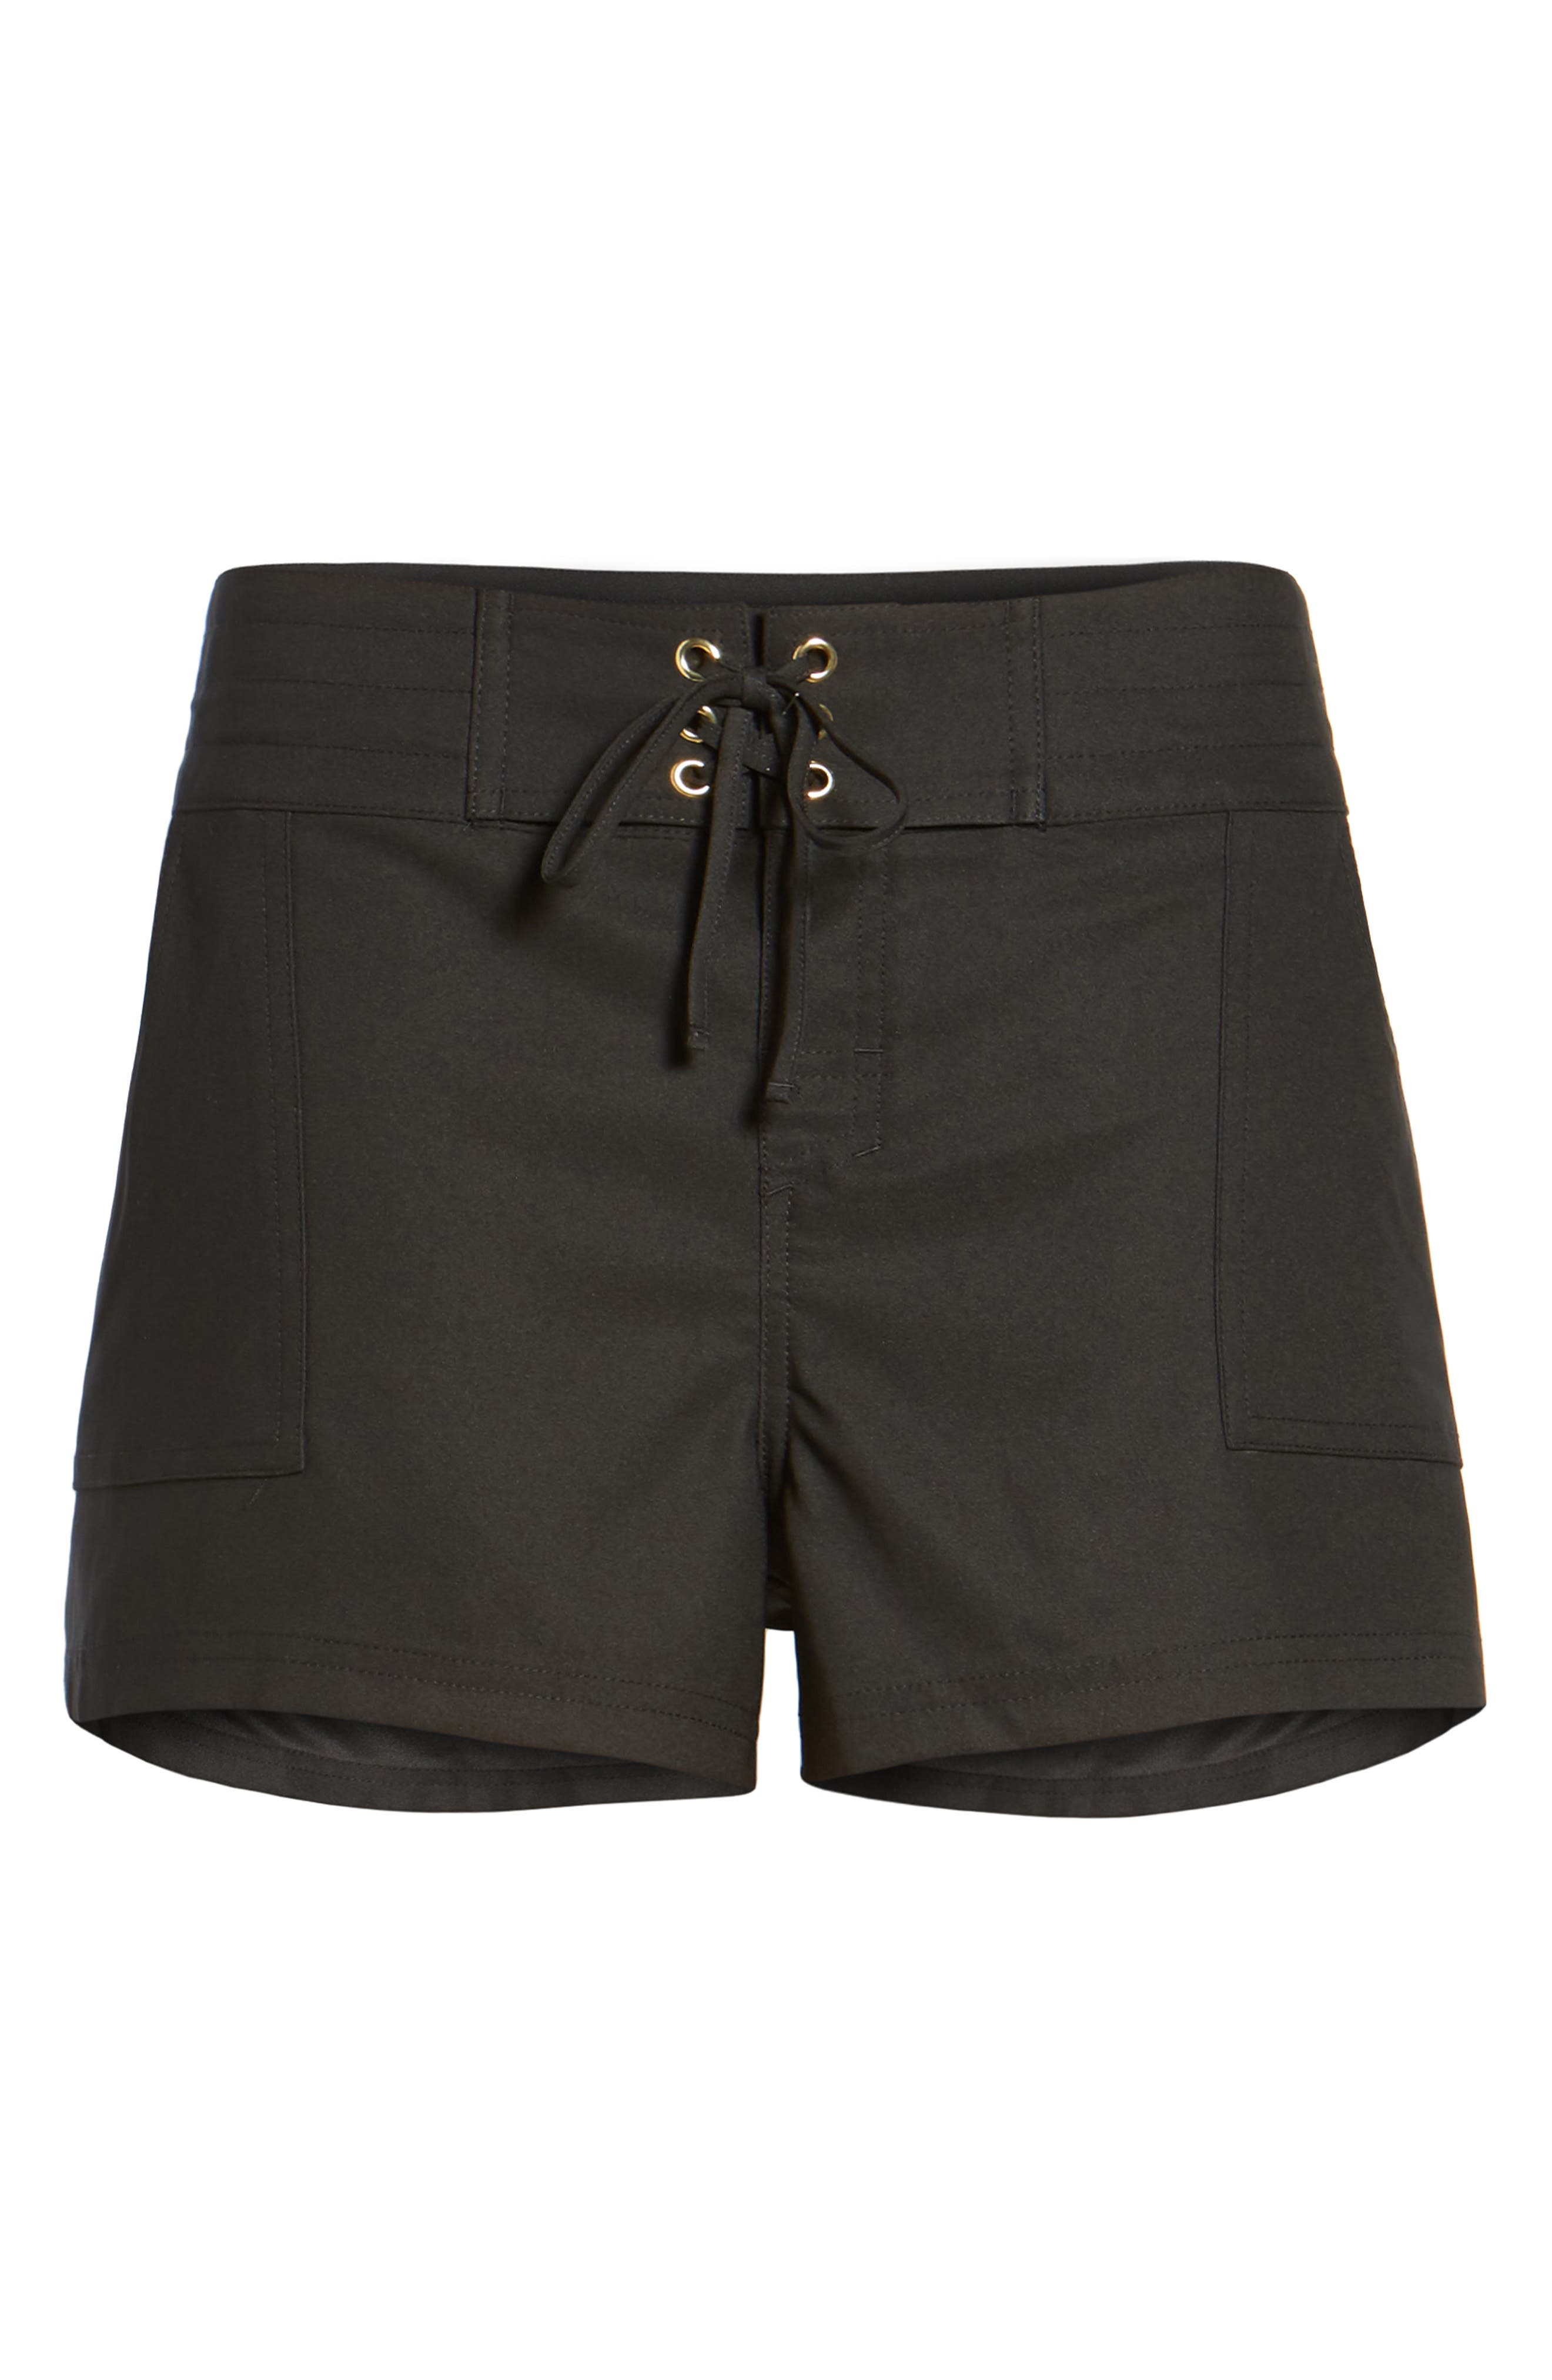 Women's La Blanca 'Boardwalk' Shorts